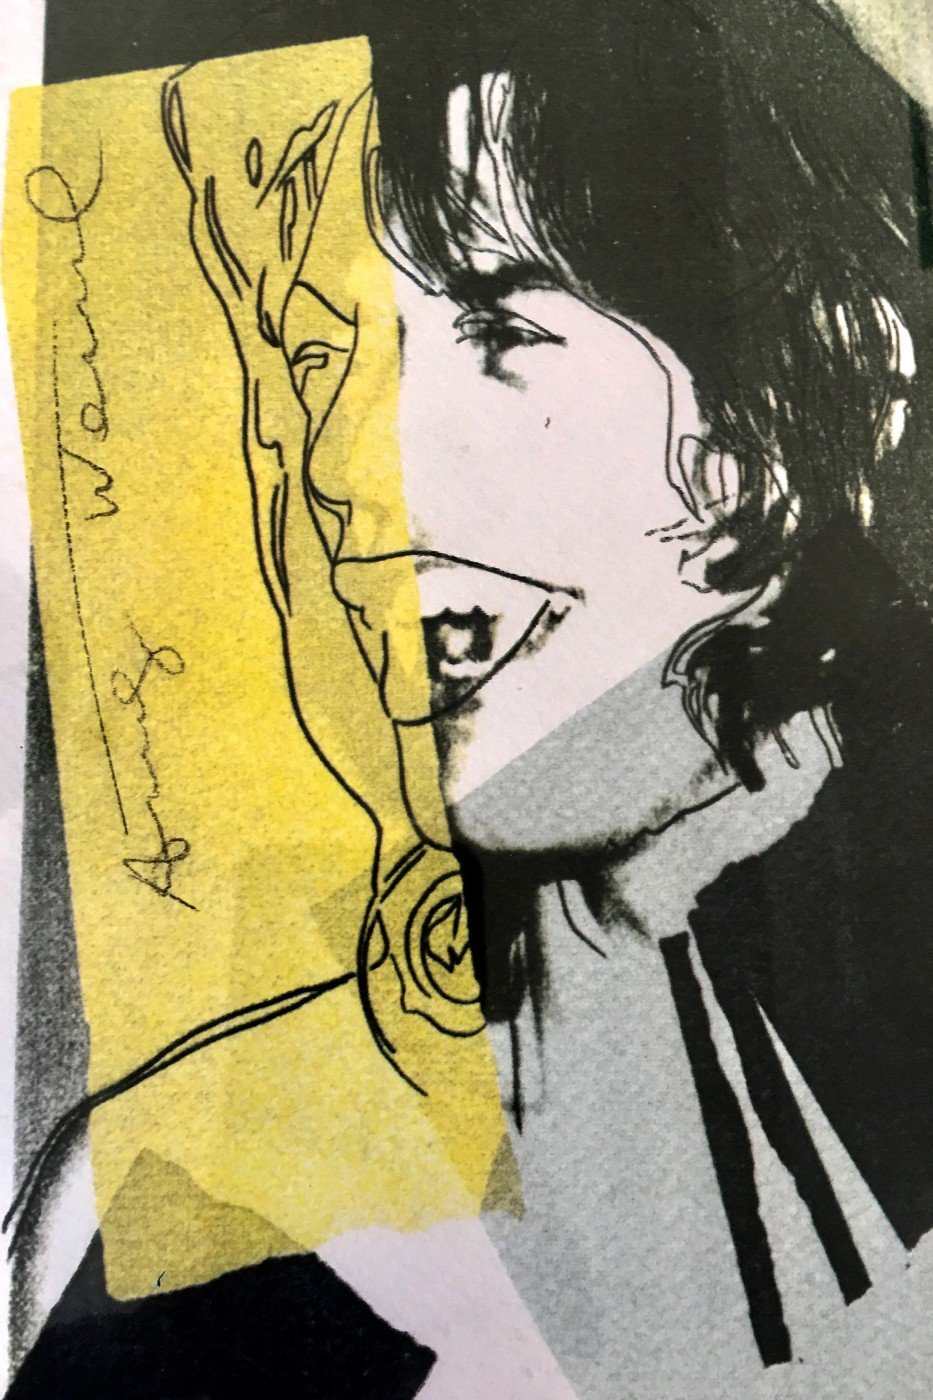 Mick Jagger - V - Canvas Prints by Andy Warhol | Buy Posters, Frames ...